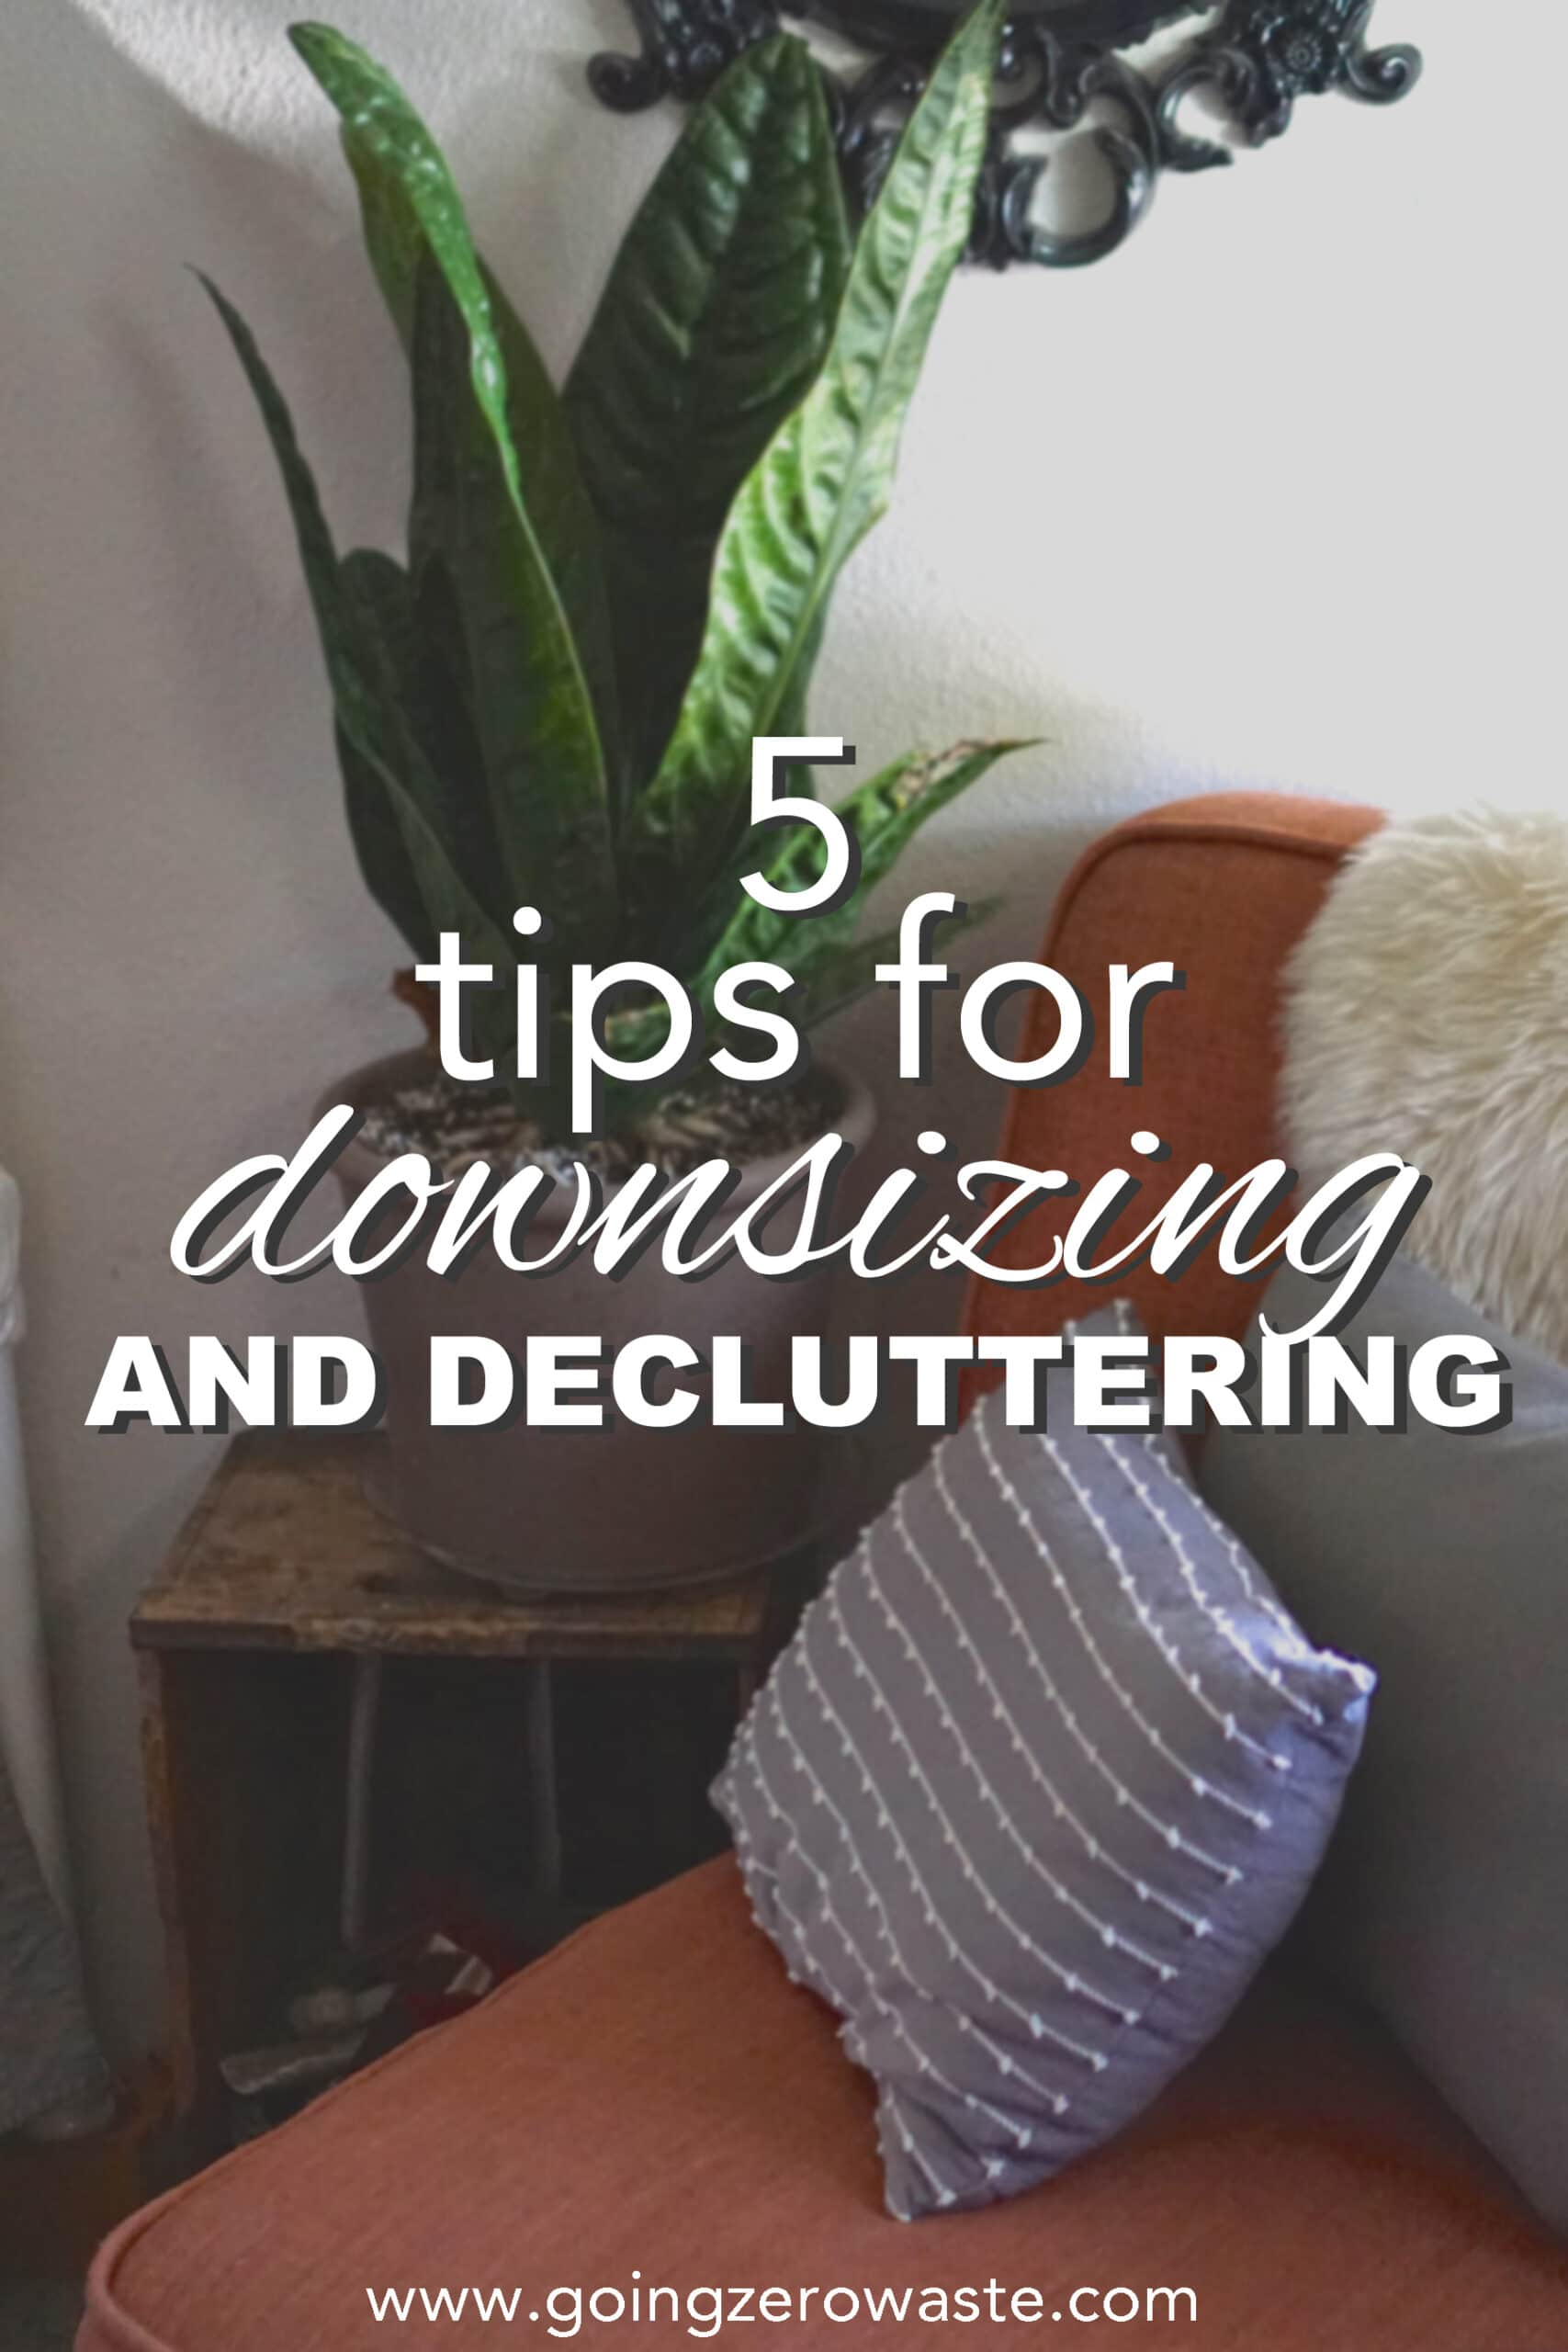 5 Tips for Downsizing and Decluttering from www.goingzerowaste.com #zerowaste #ecofriendly #gogreen #sustainable #minimalism #declutter #sparkjoy #downsize